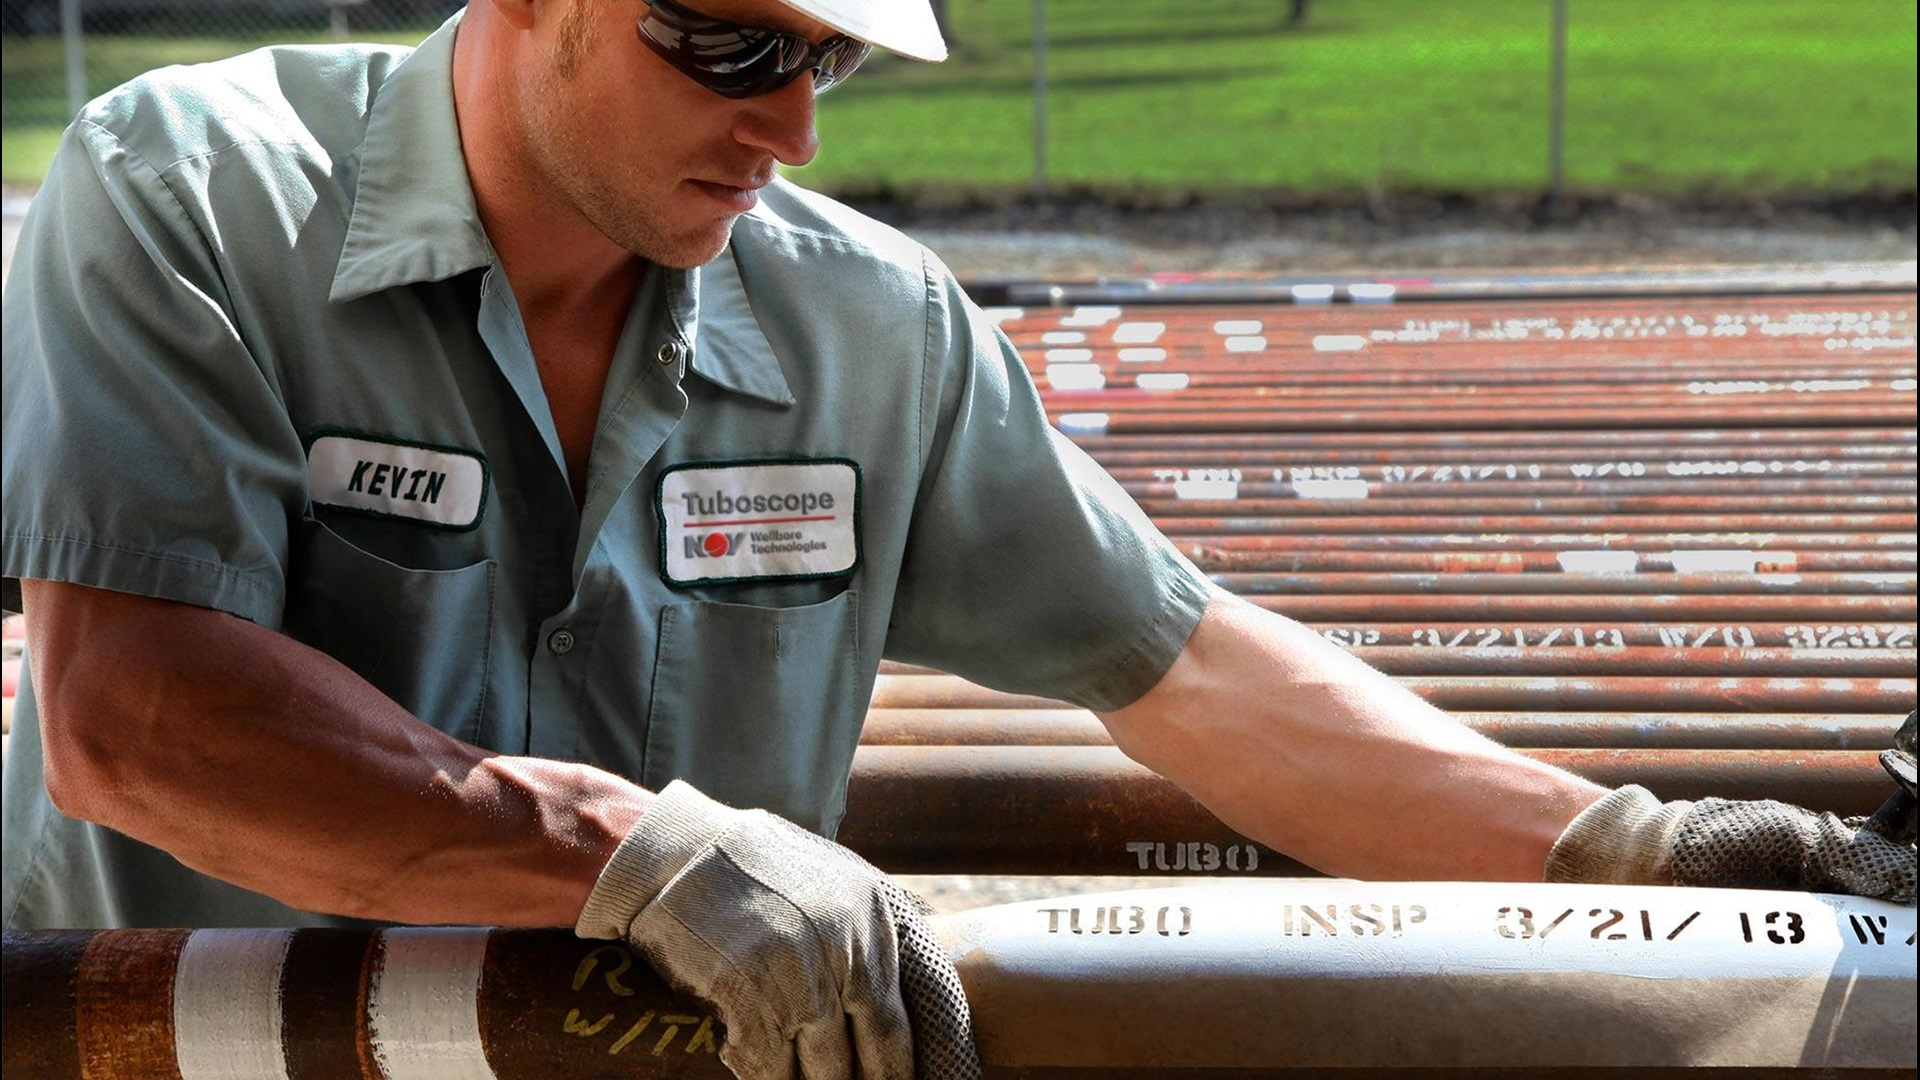 Image of an NOV employee applying a Tuboscope stencil to tubing.